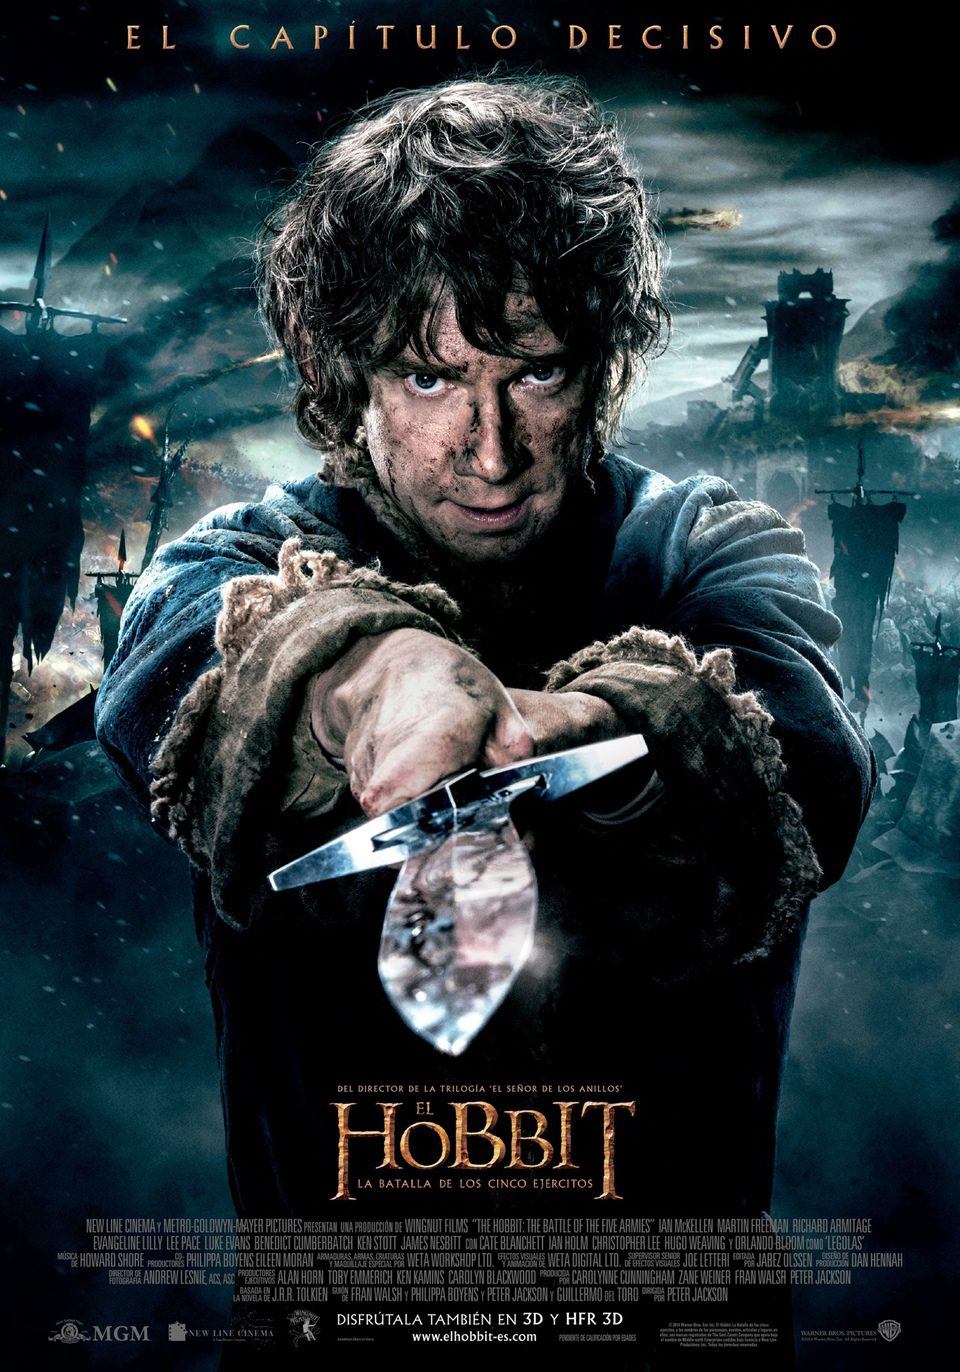 España poster for The Hobbit: The Battle of the Five Armies